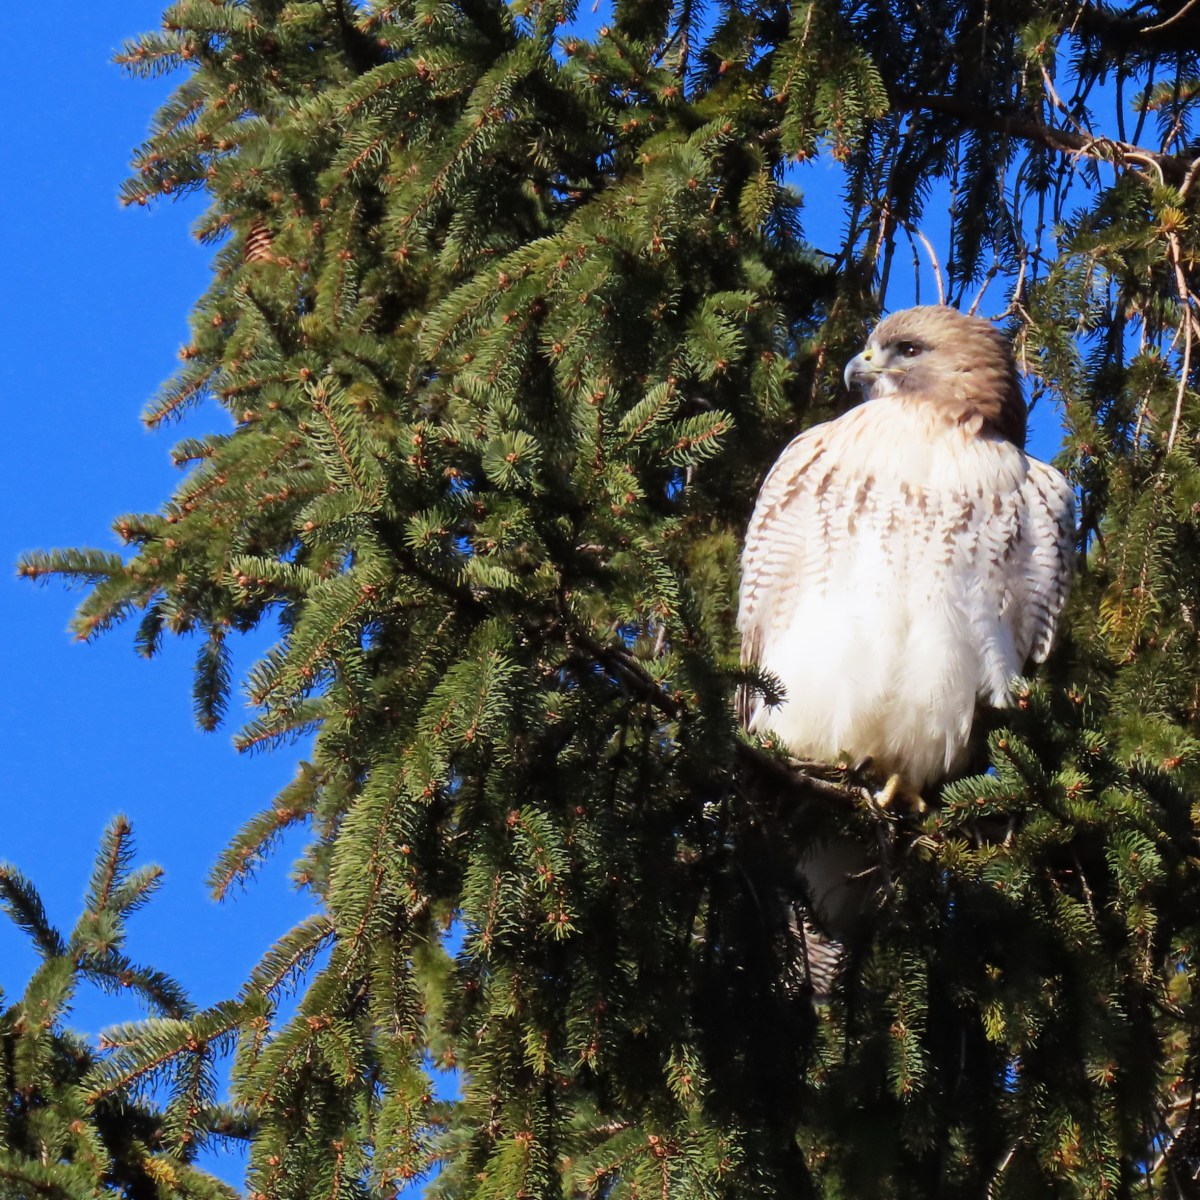 Red-tailed hawk perched in pine tree